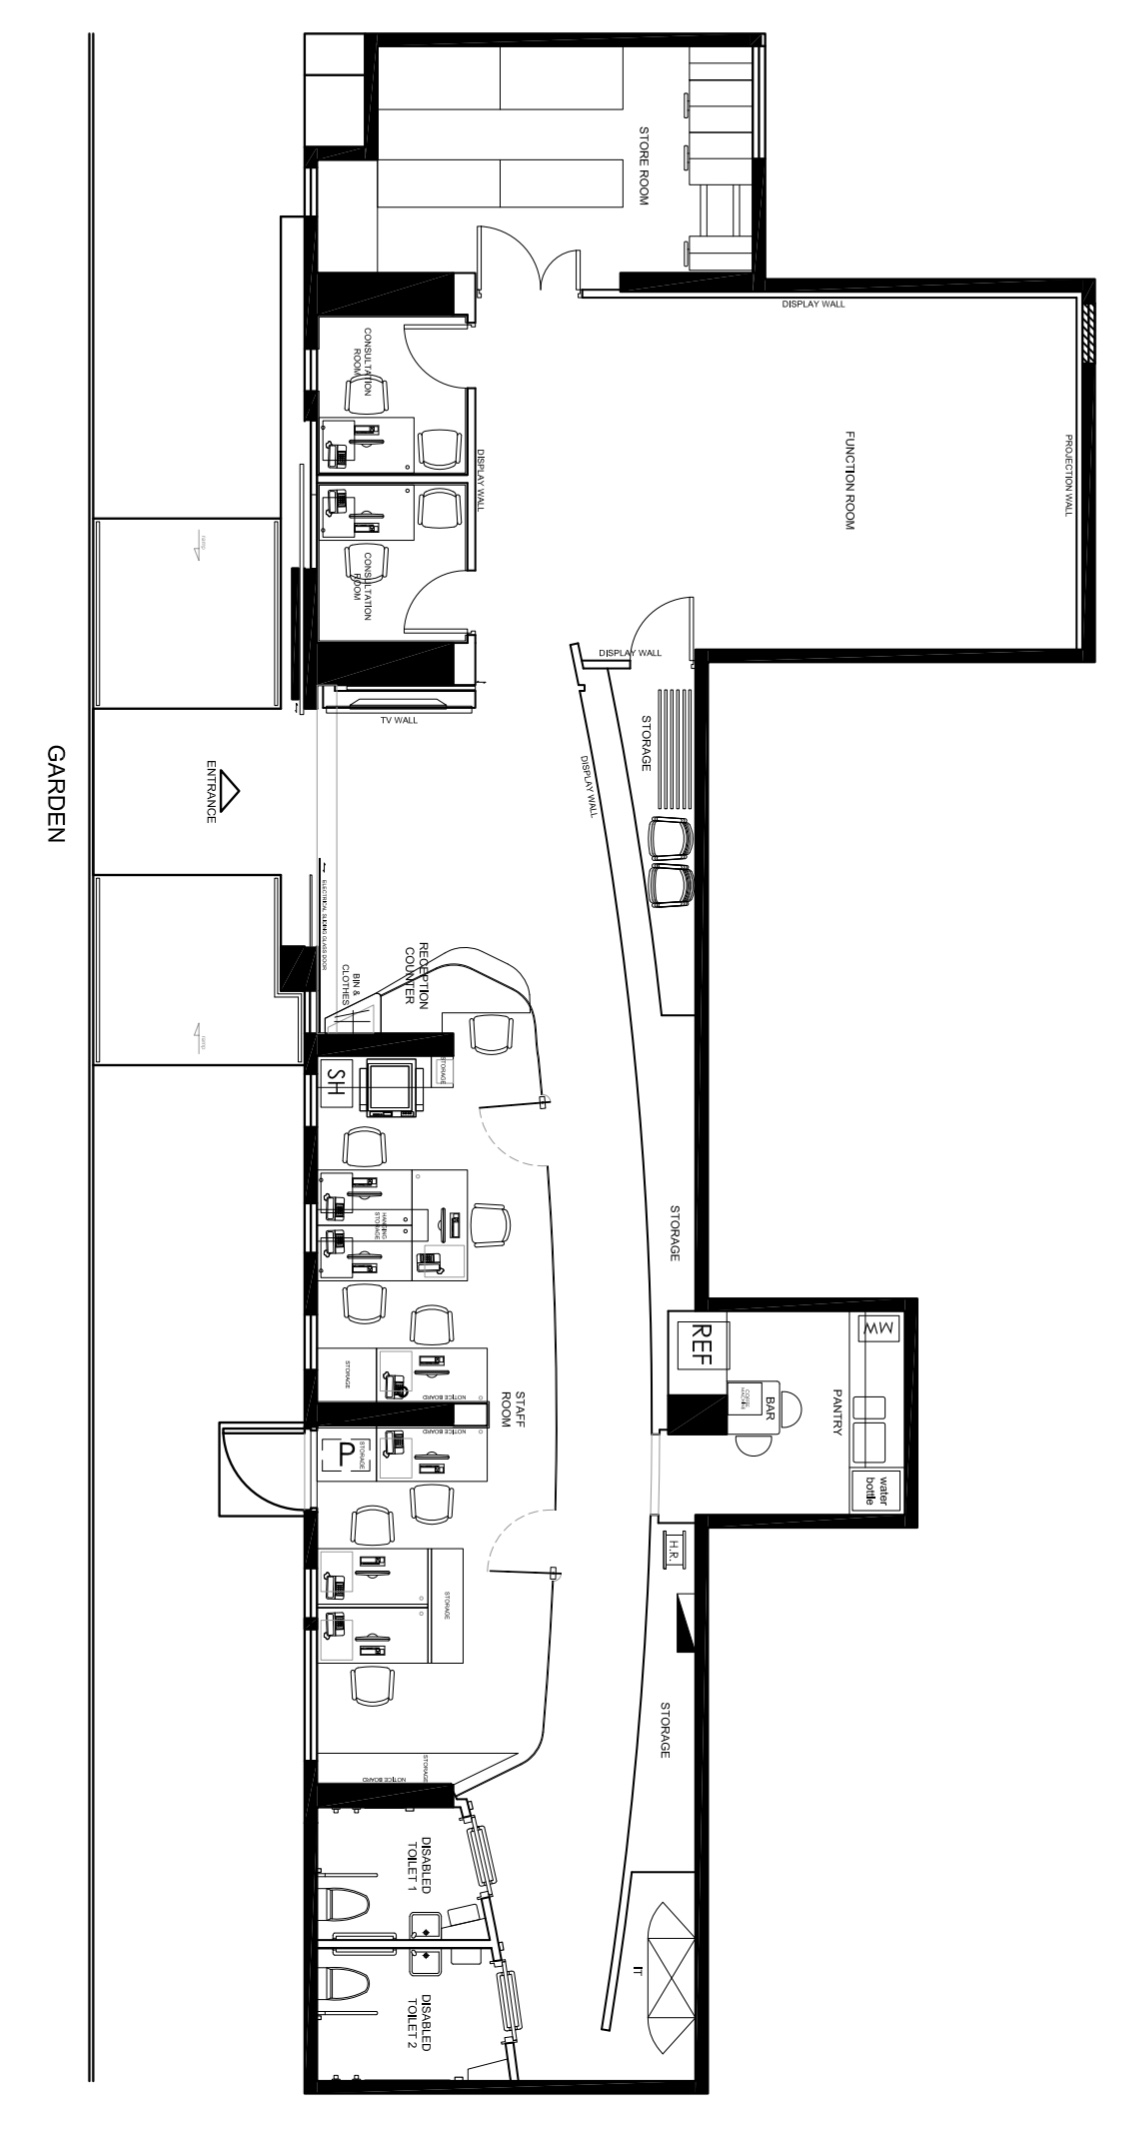 再生會 Regeneration Society Center Plan